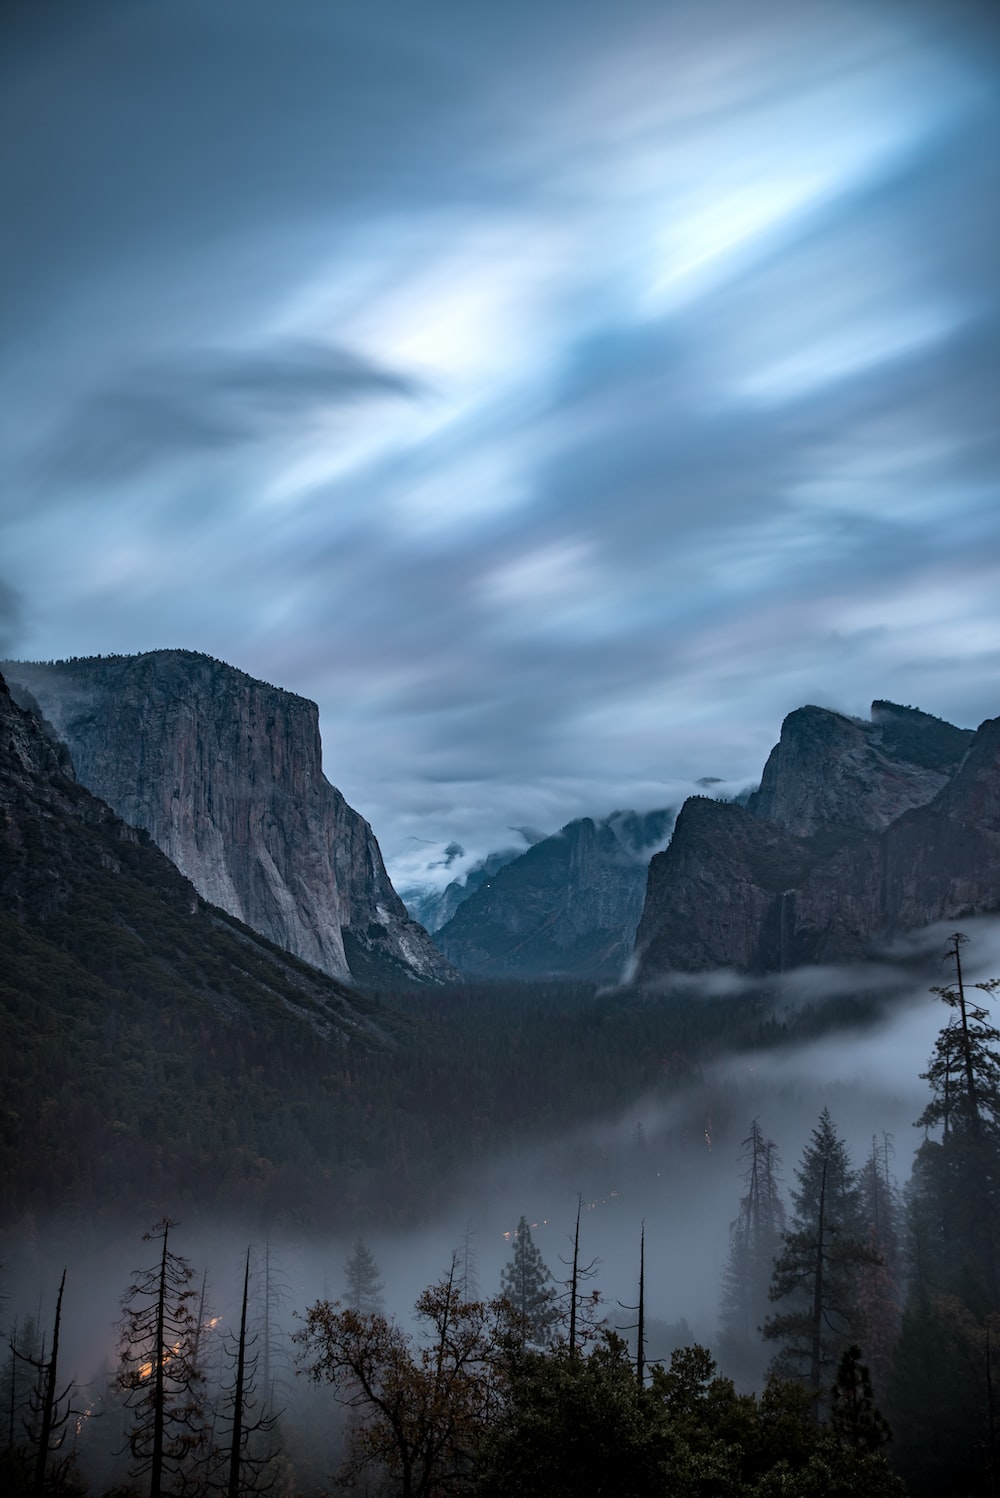 photography of trees and mountain under white sky